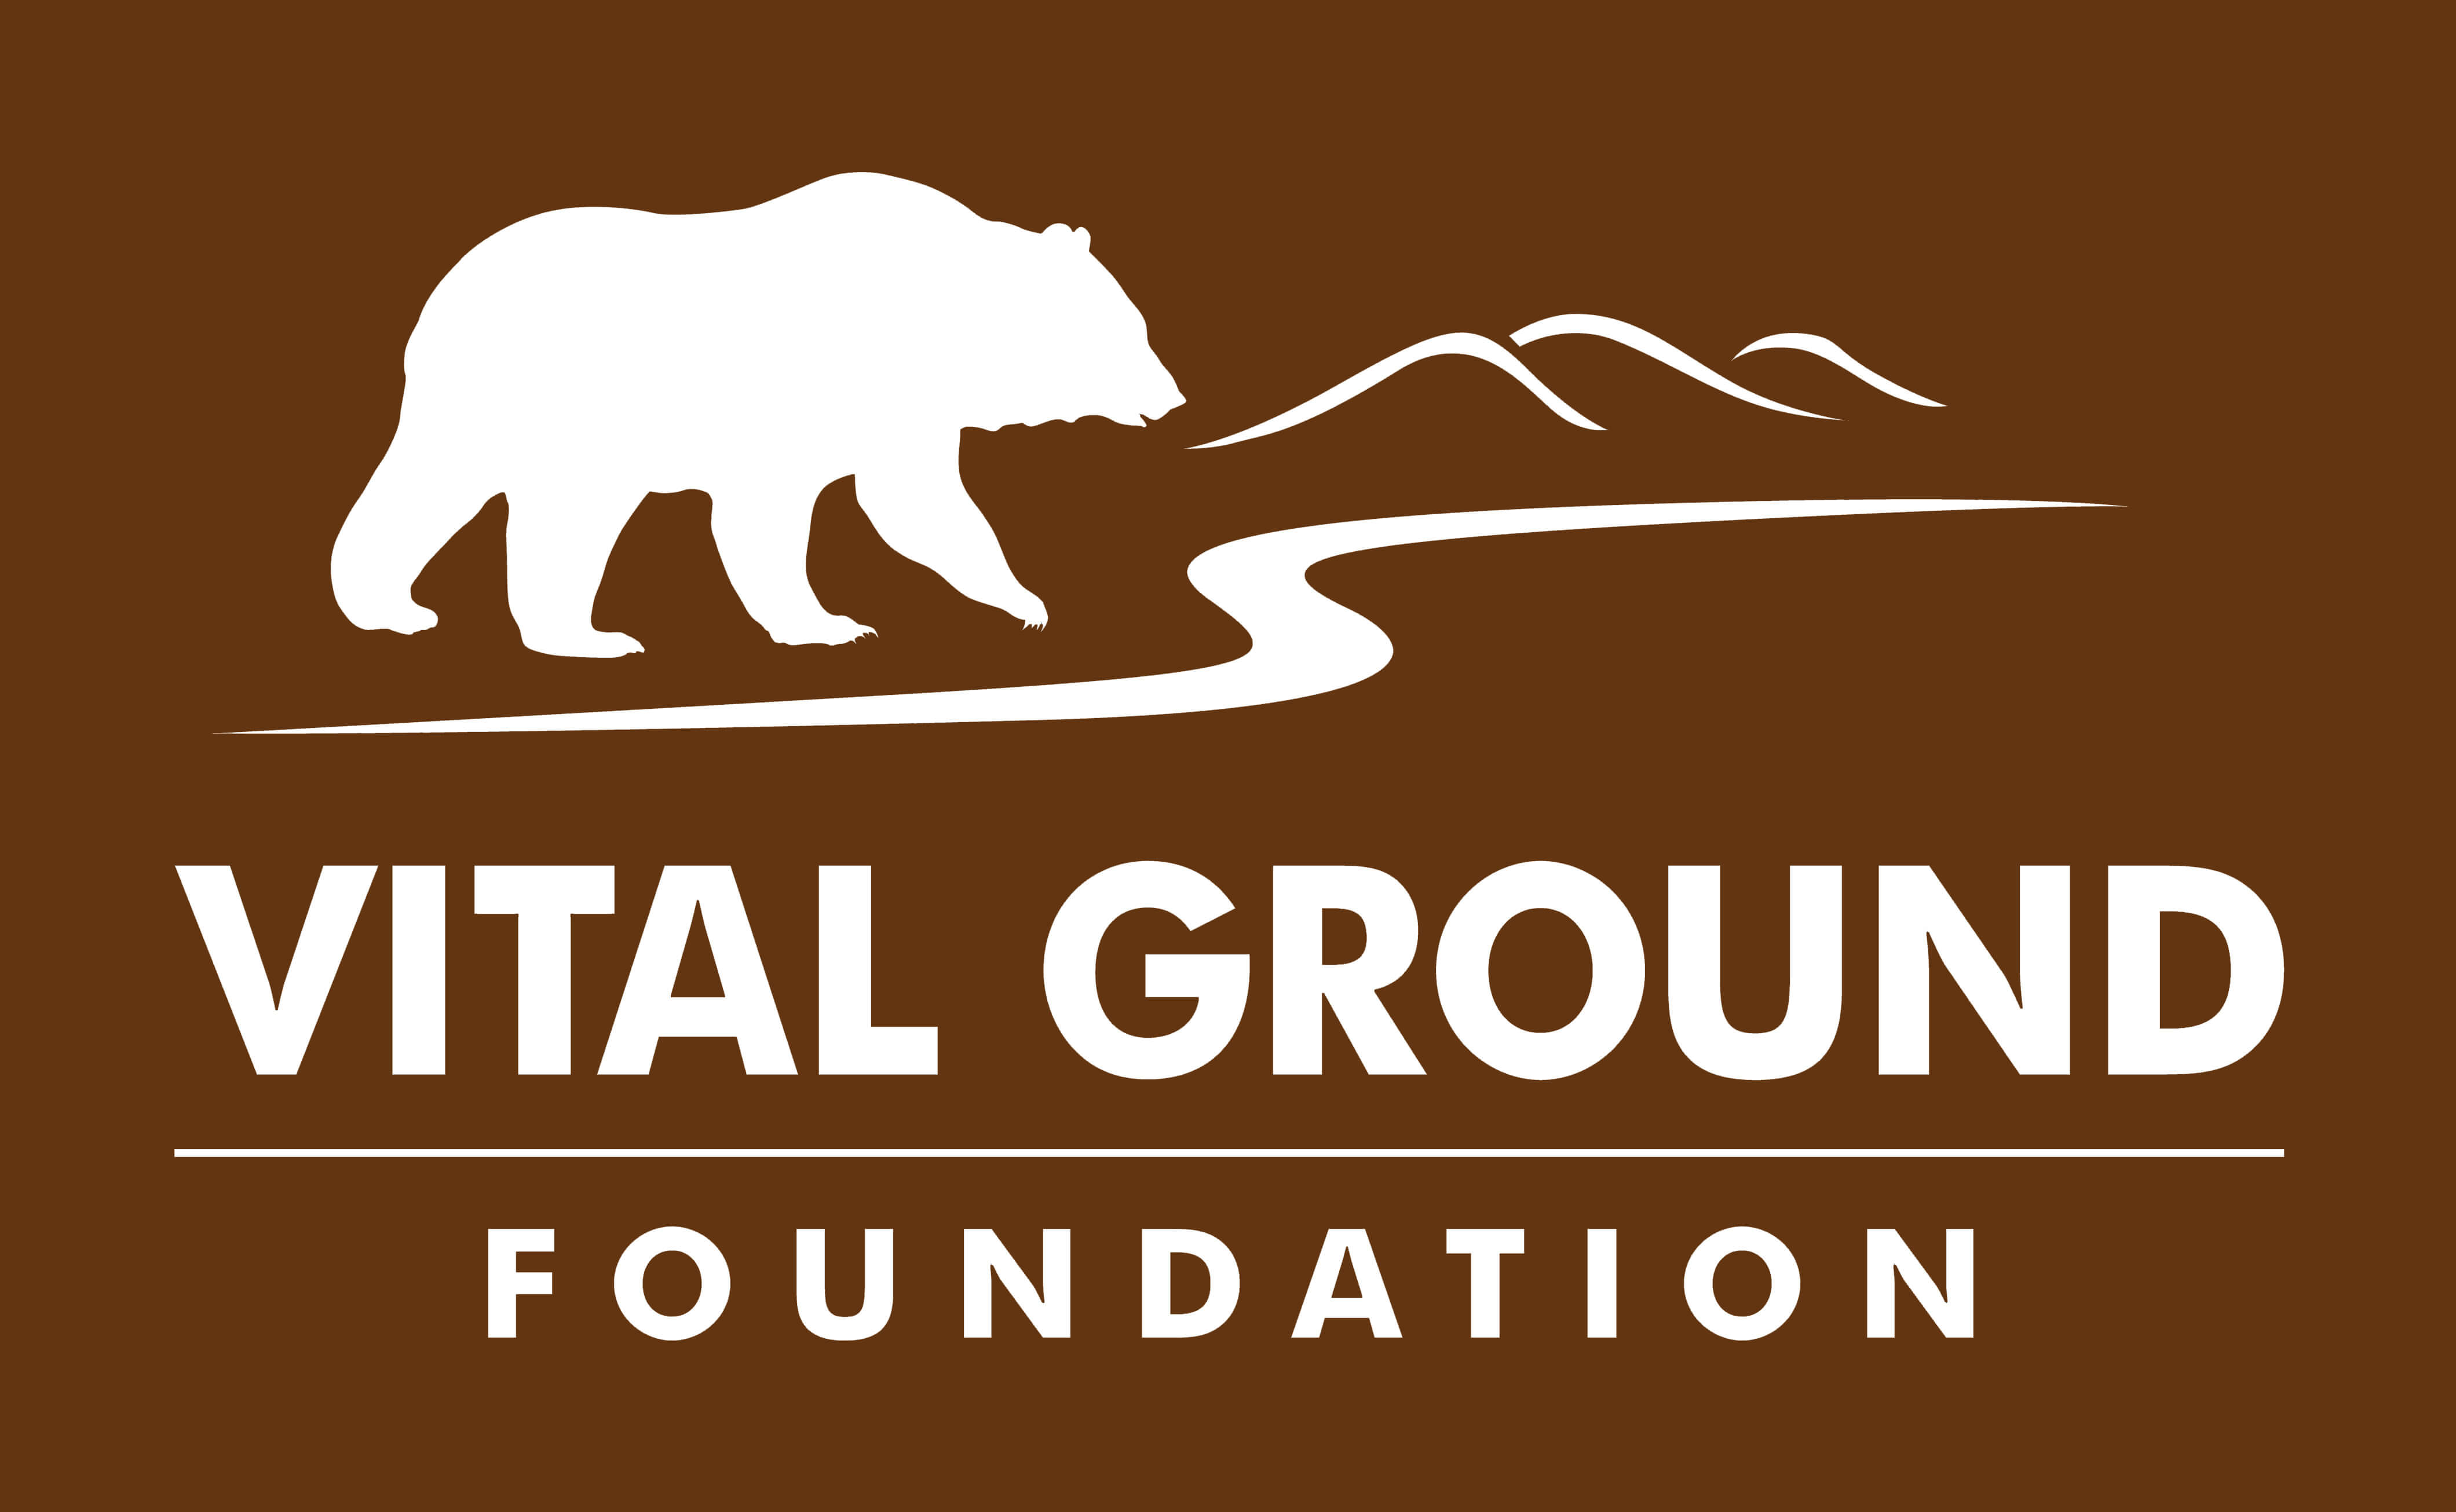 Vital Ground Connected Landscapes logo in brown and white